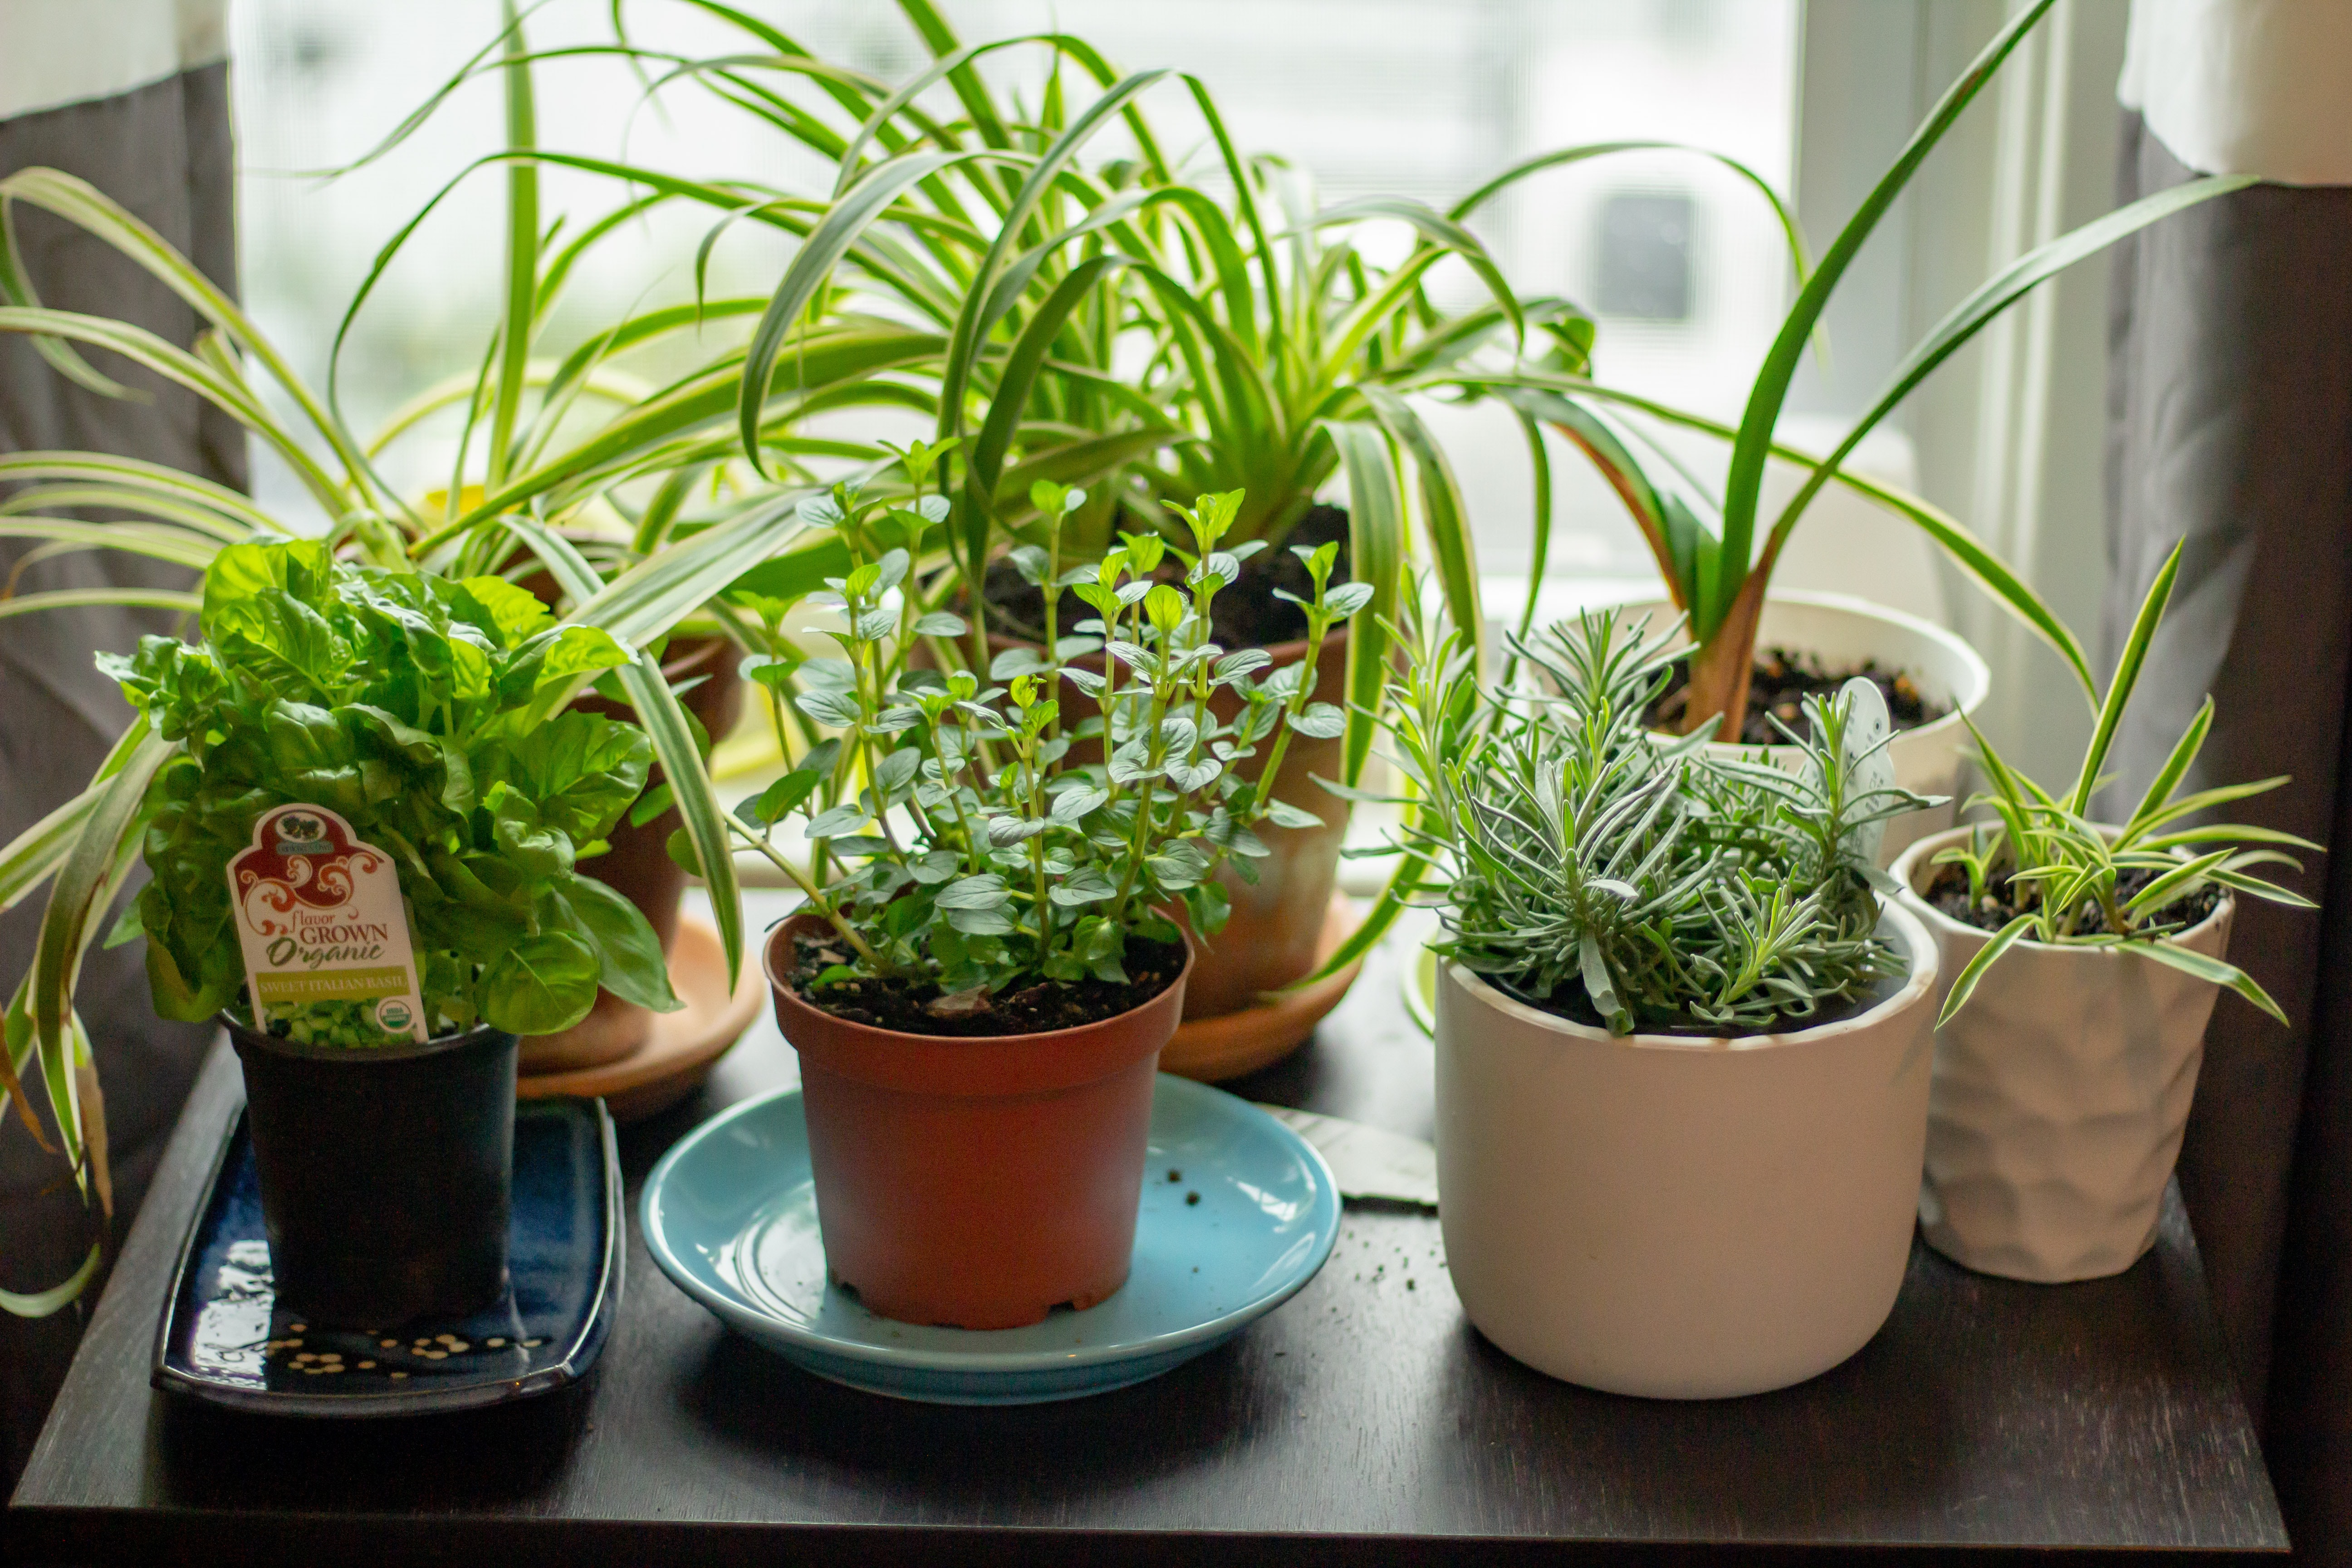 potted plants on a table in front of a window